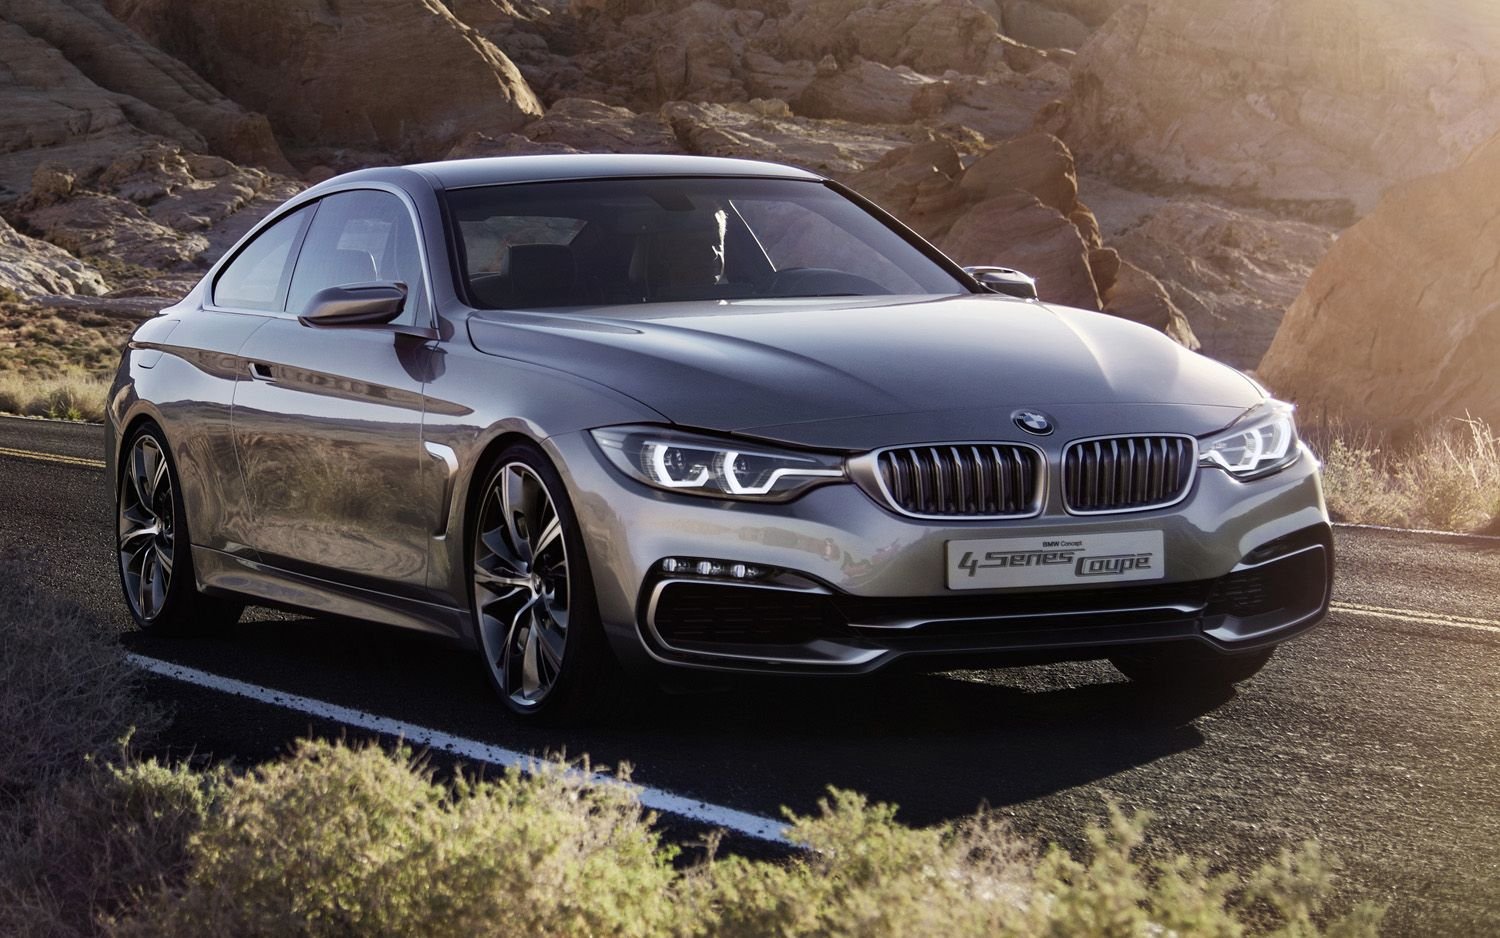 BMW-4-Series-coupe-concept-front-three-quarter-2 Photo on December 5, 2012